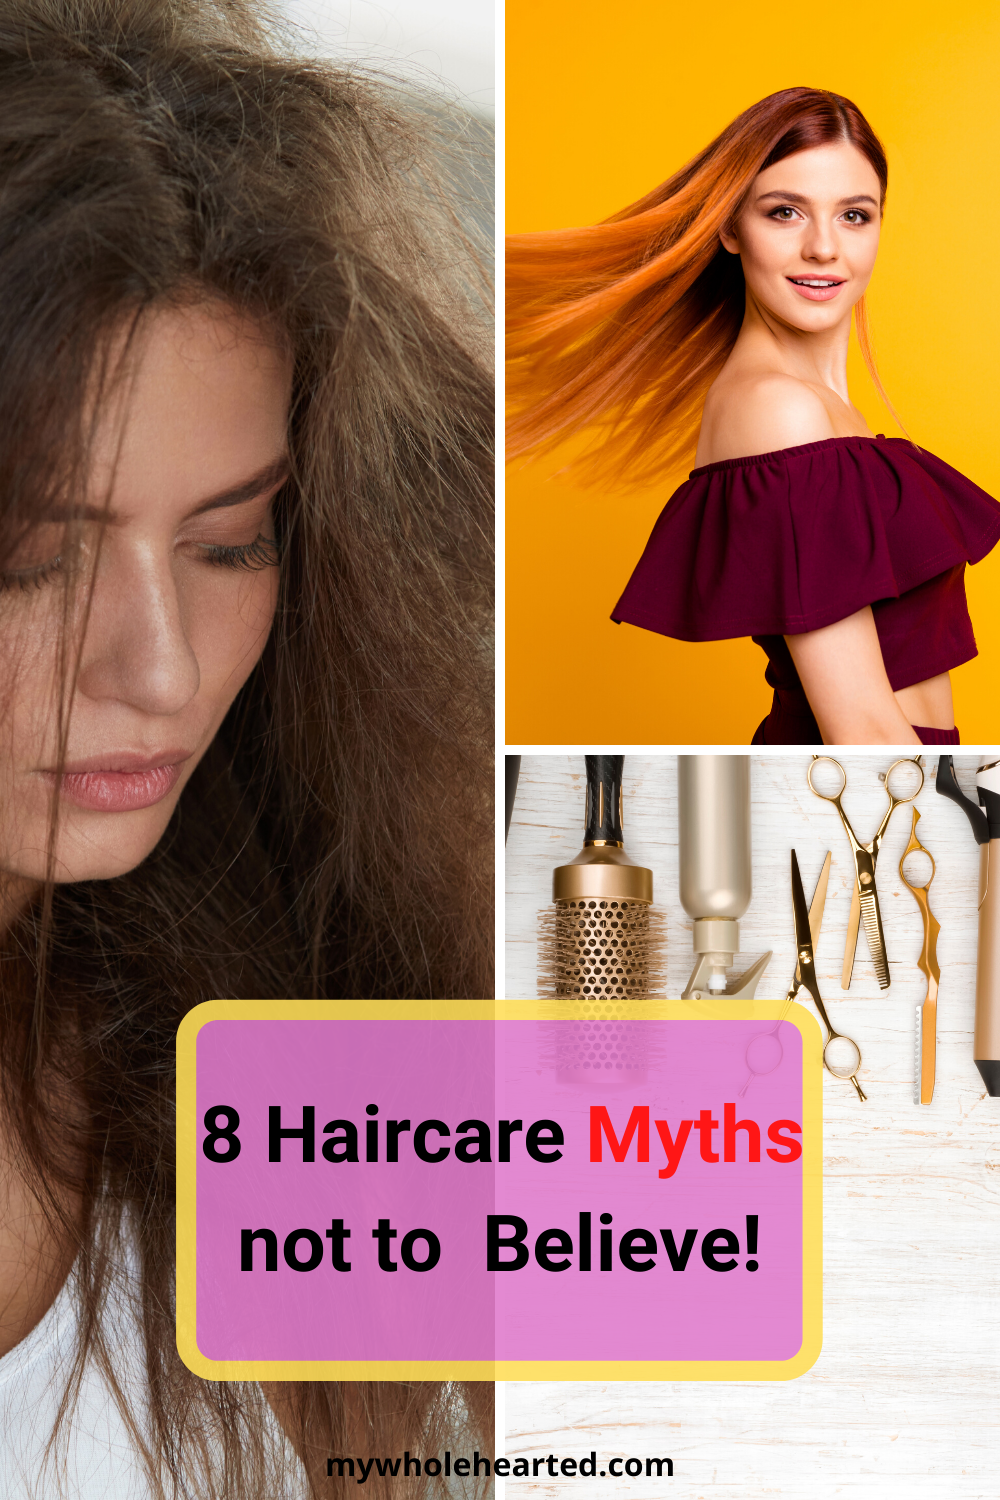 Before taking care of hair, you must make sure that you